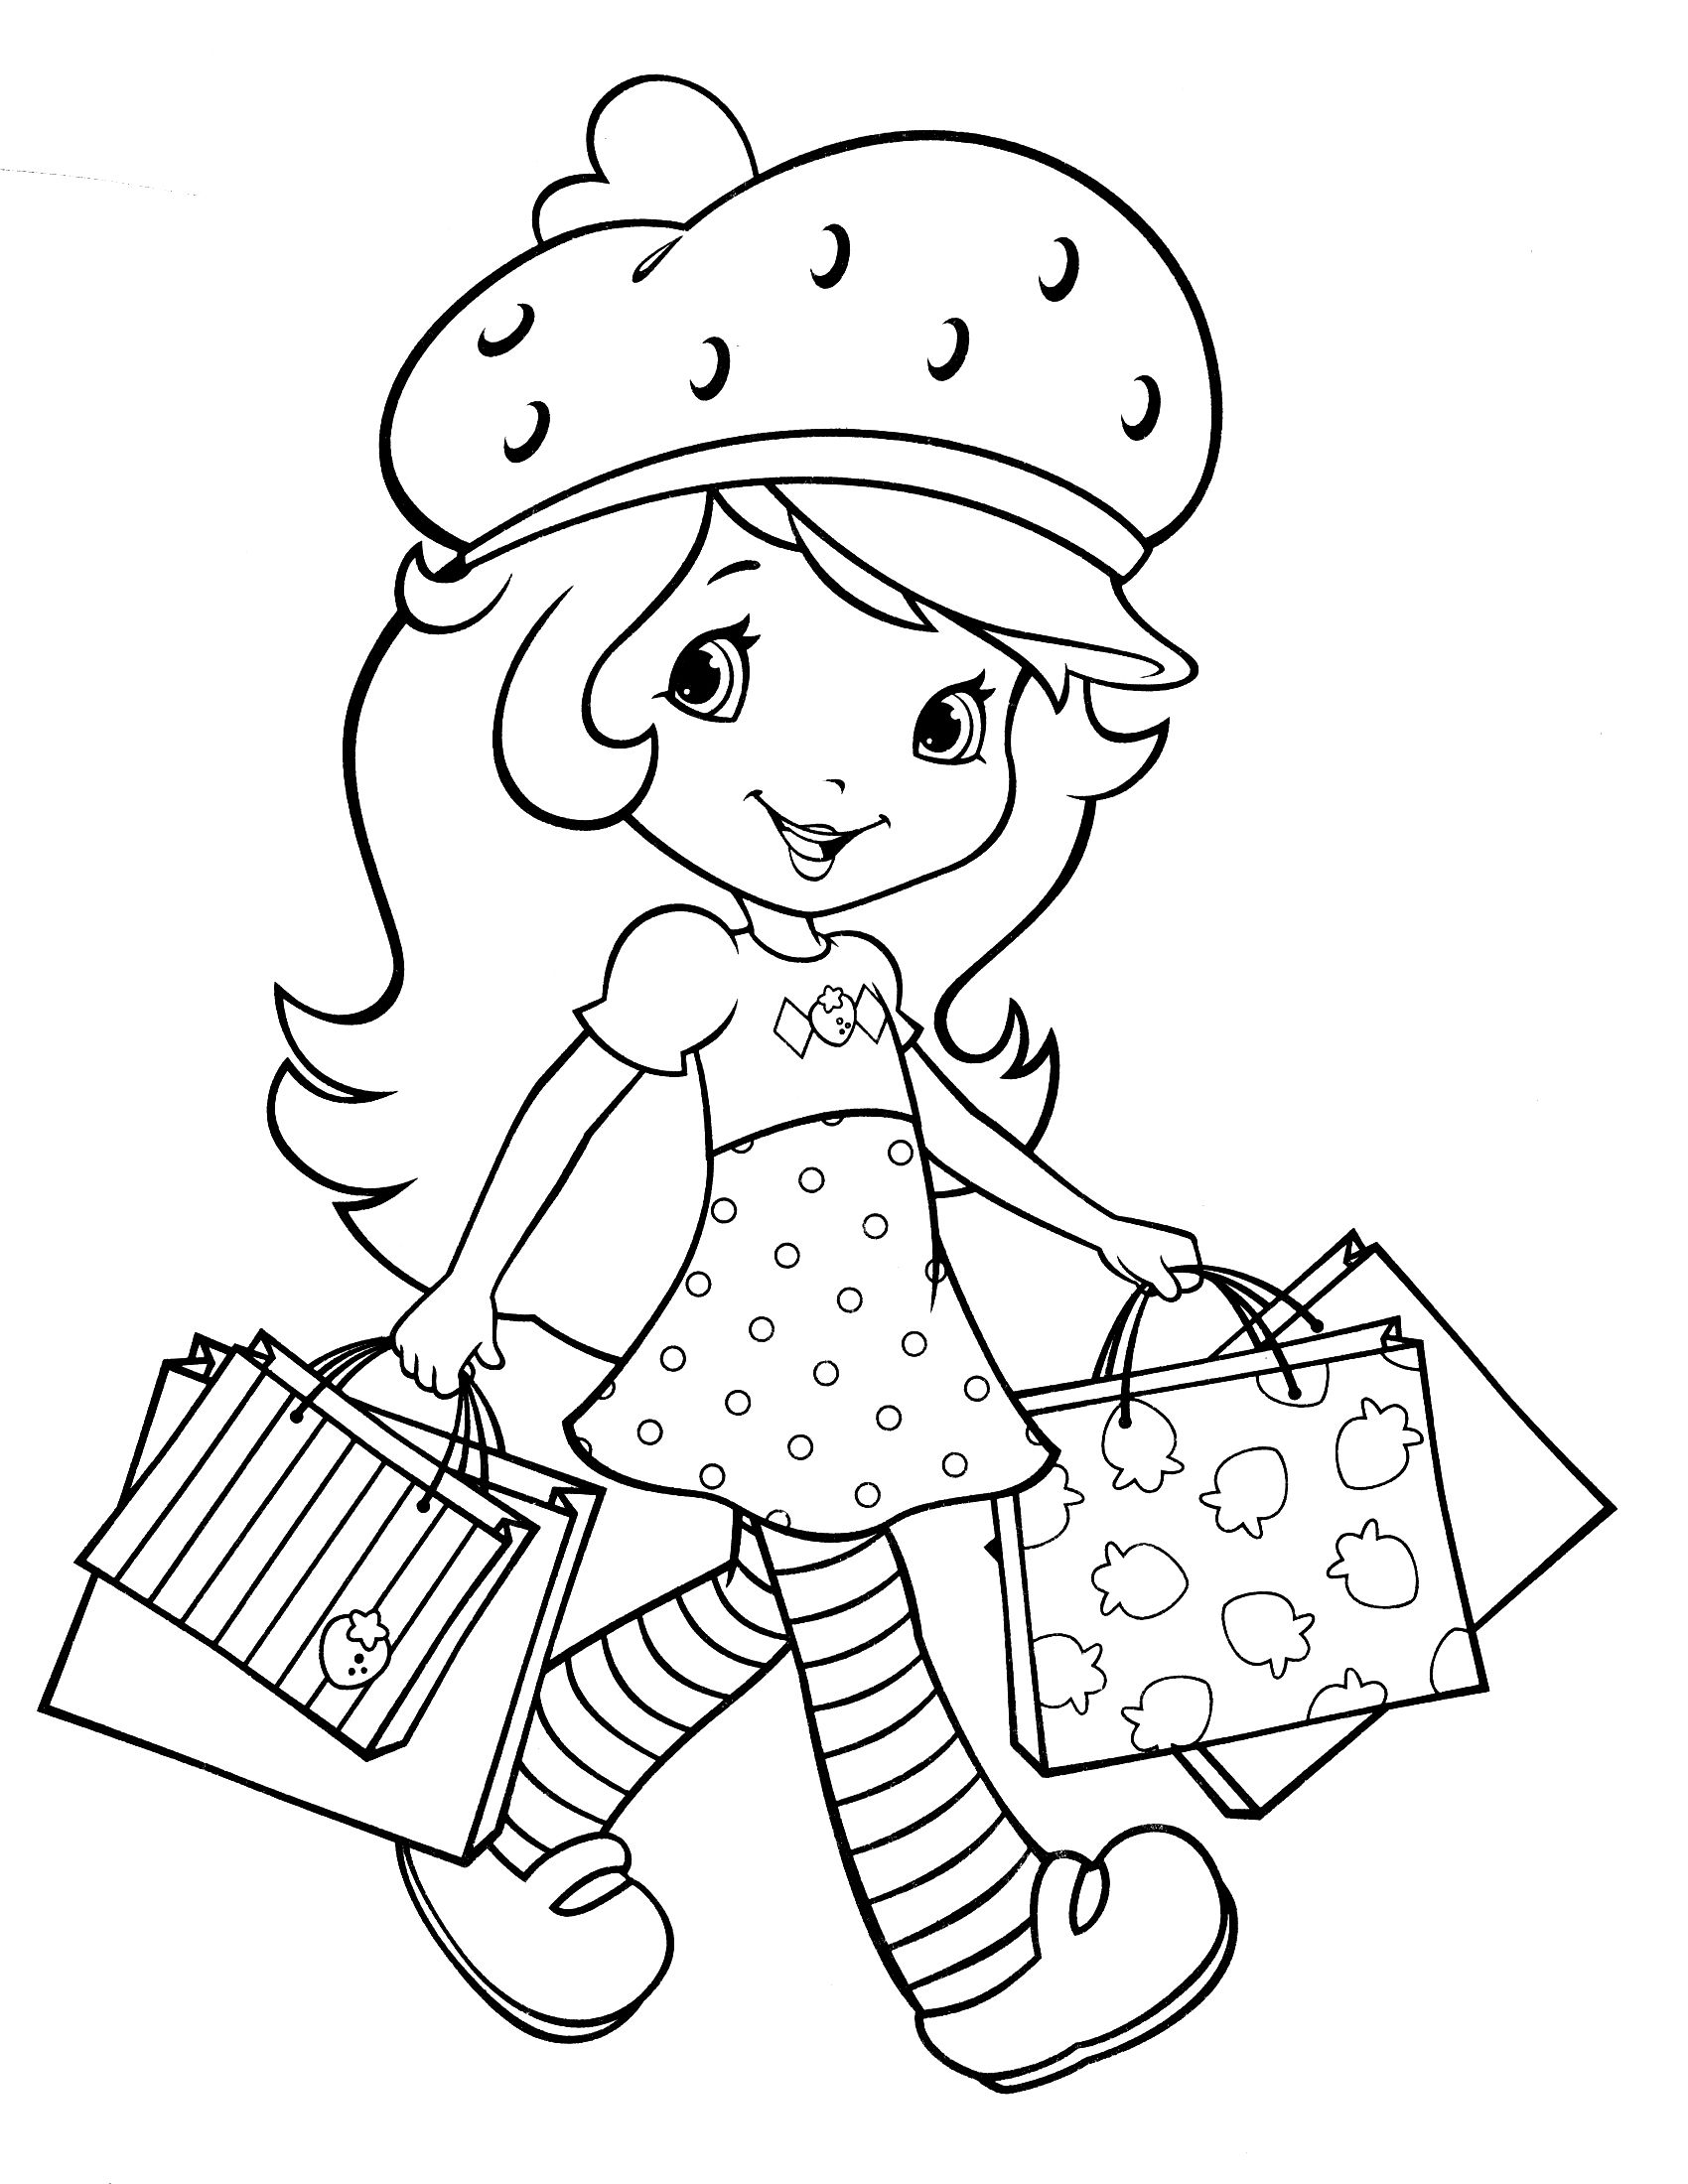 strawberry shortcake coloring book pages - photo#32